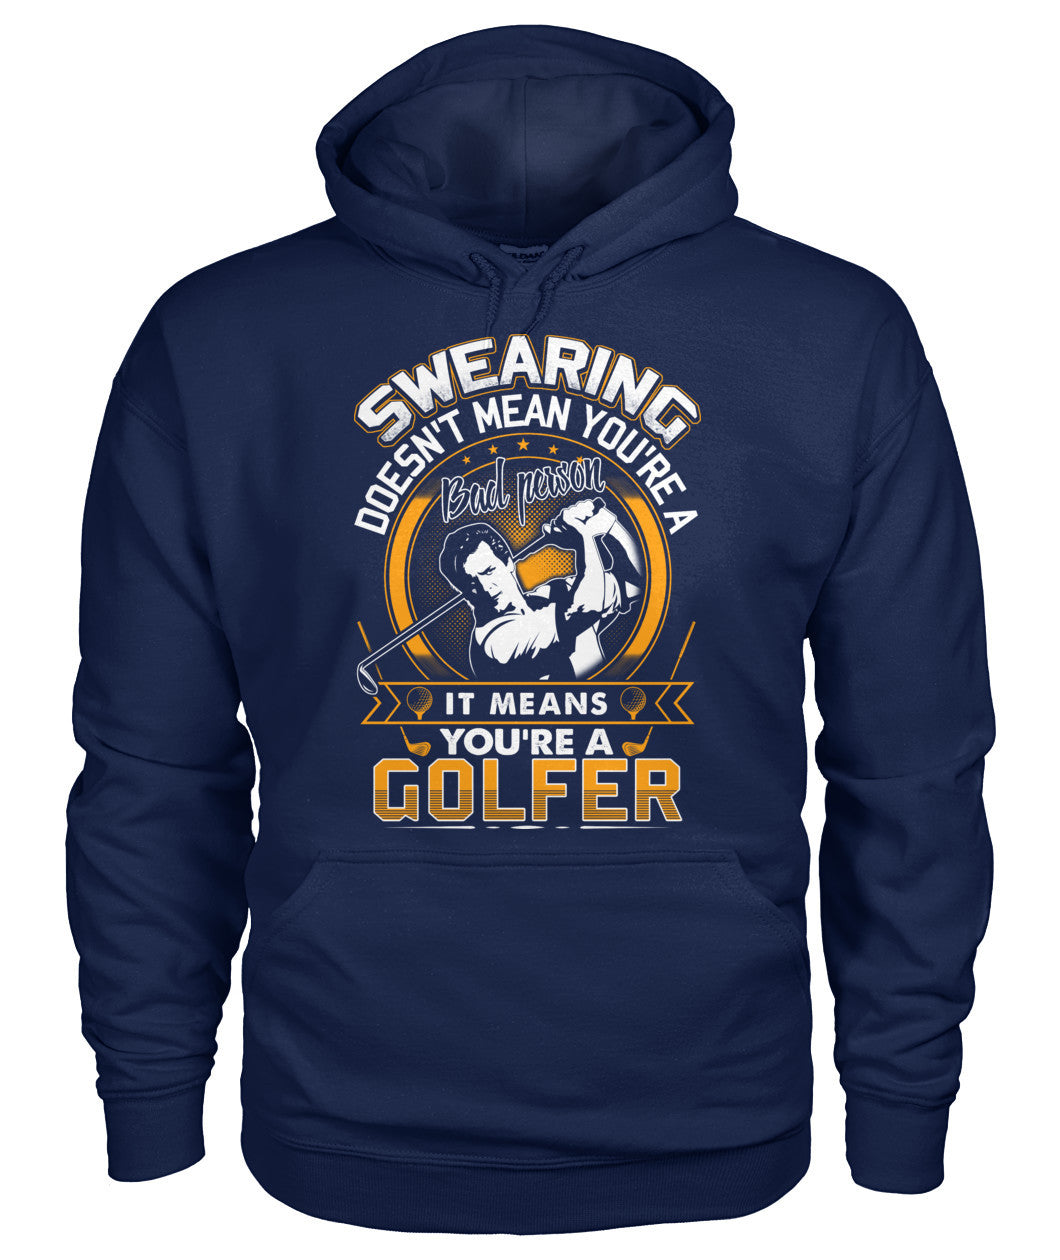 You are a golfer shirt